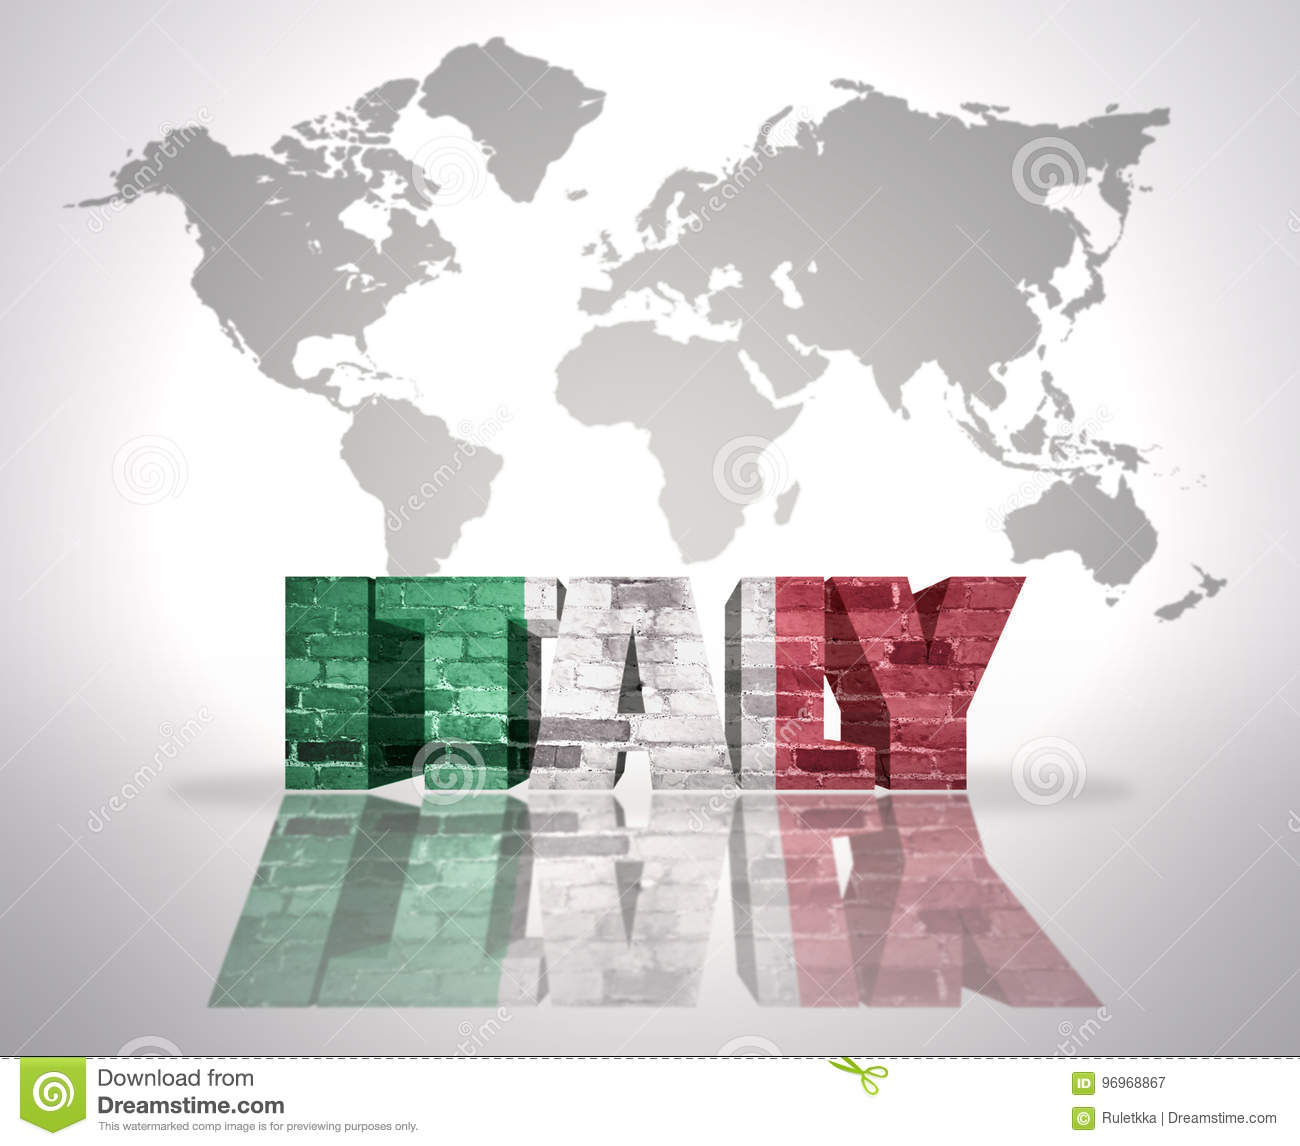 Italy On Map Of World.Word Italy On A World Map Background Stock Illustration